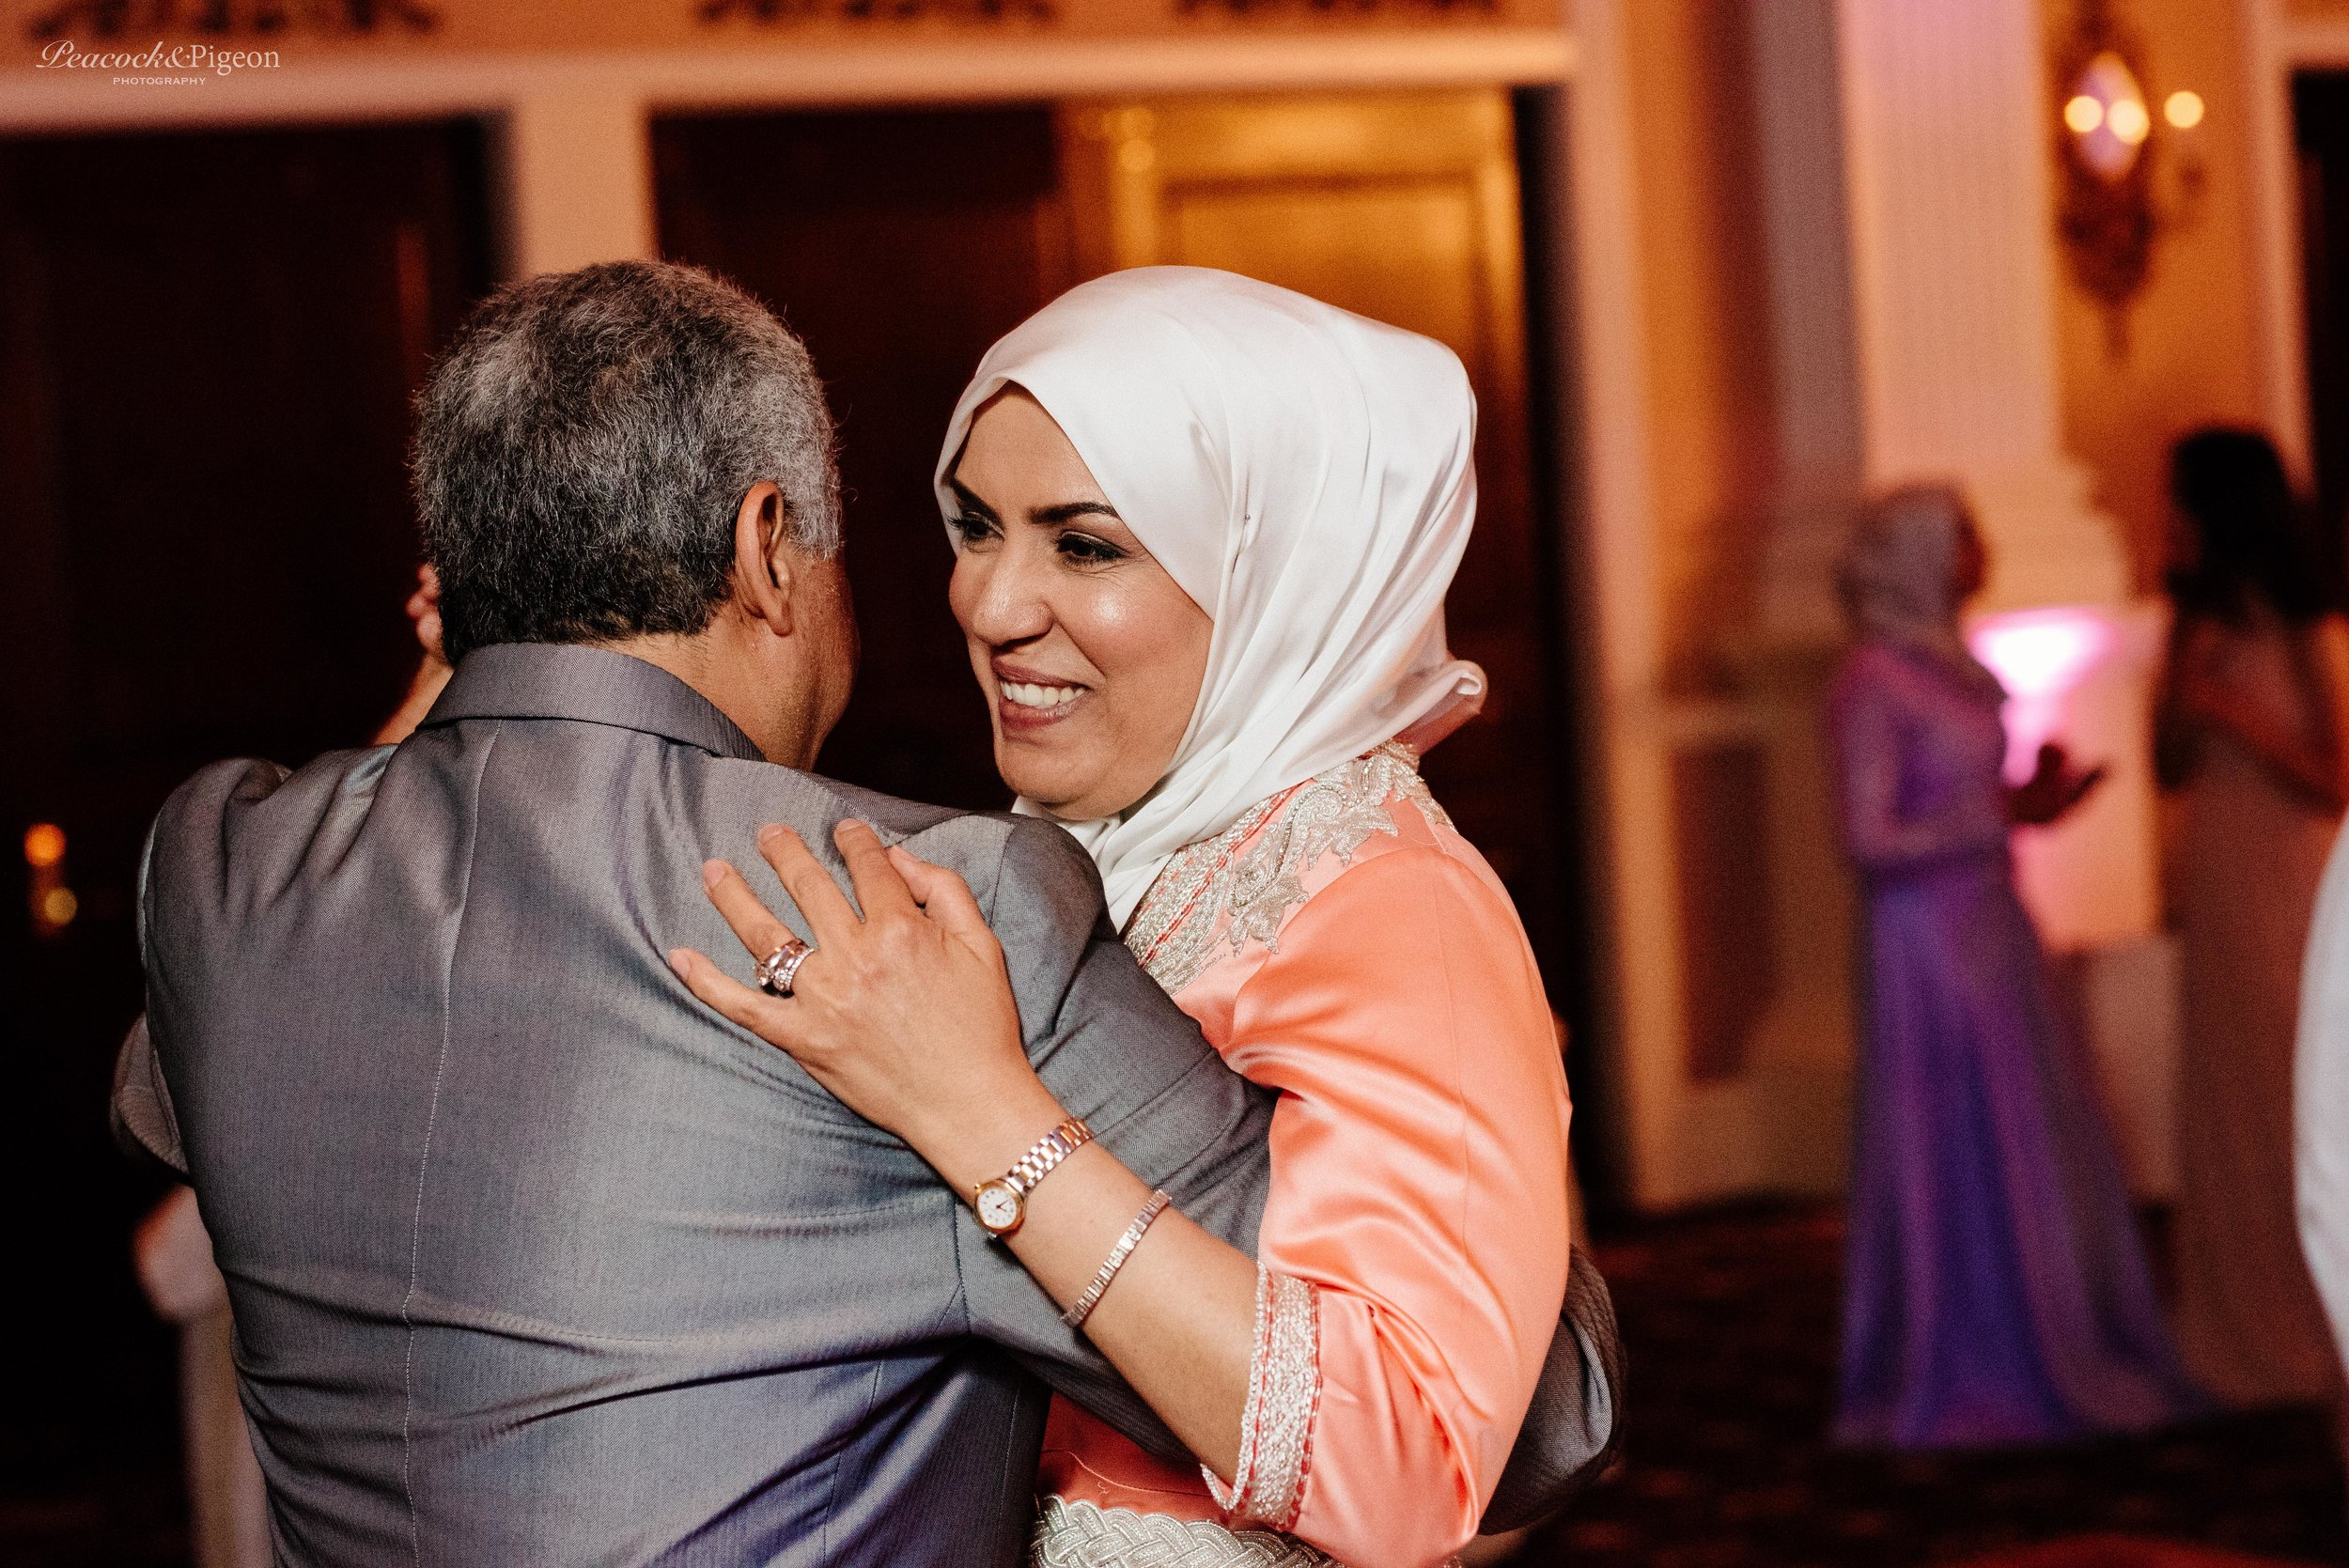 The_Wedding_of_Radwa_and_Kareem_at_Somerset_Palace_Part_Thirteen_First_Dances_Watermarked-32.jpg